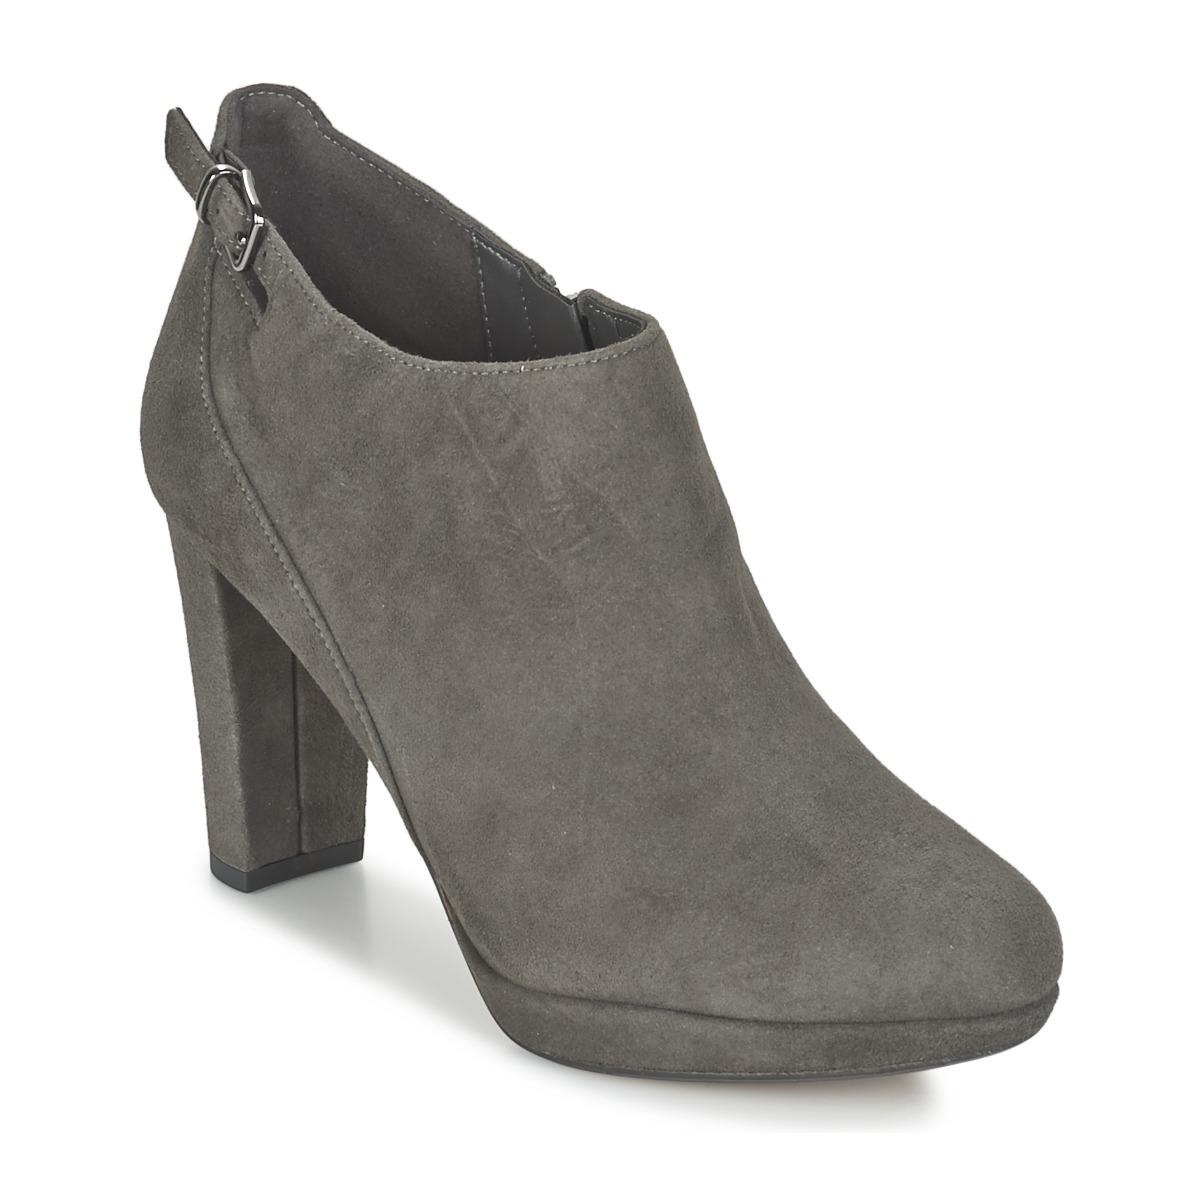 95270e526 Clarks Kendra Spice Low Boots in Gray - Lyst